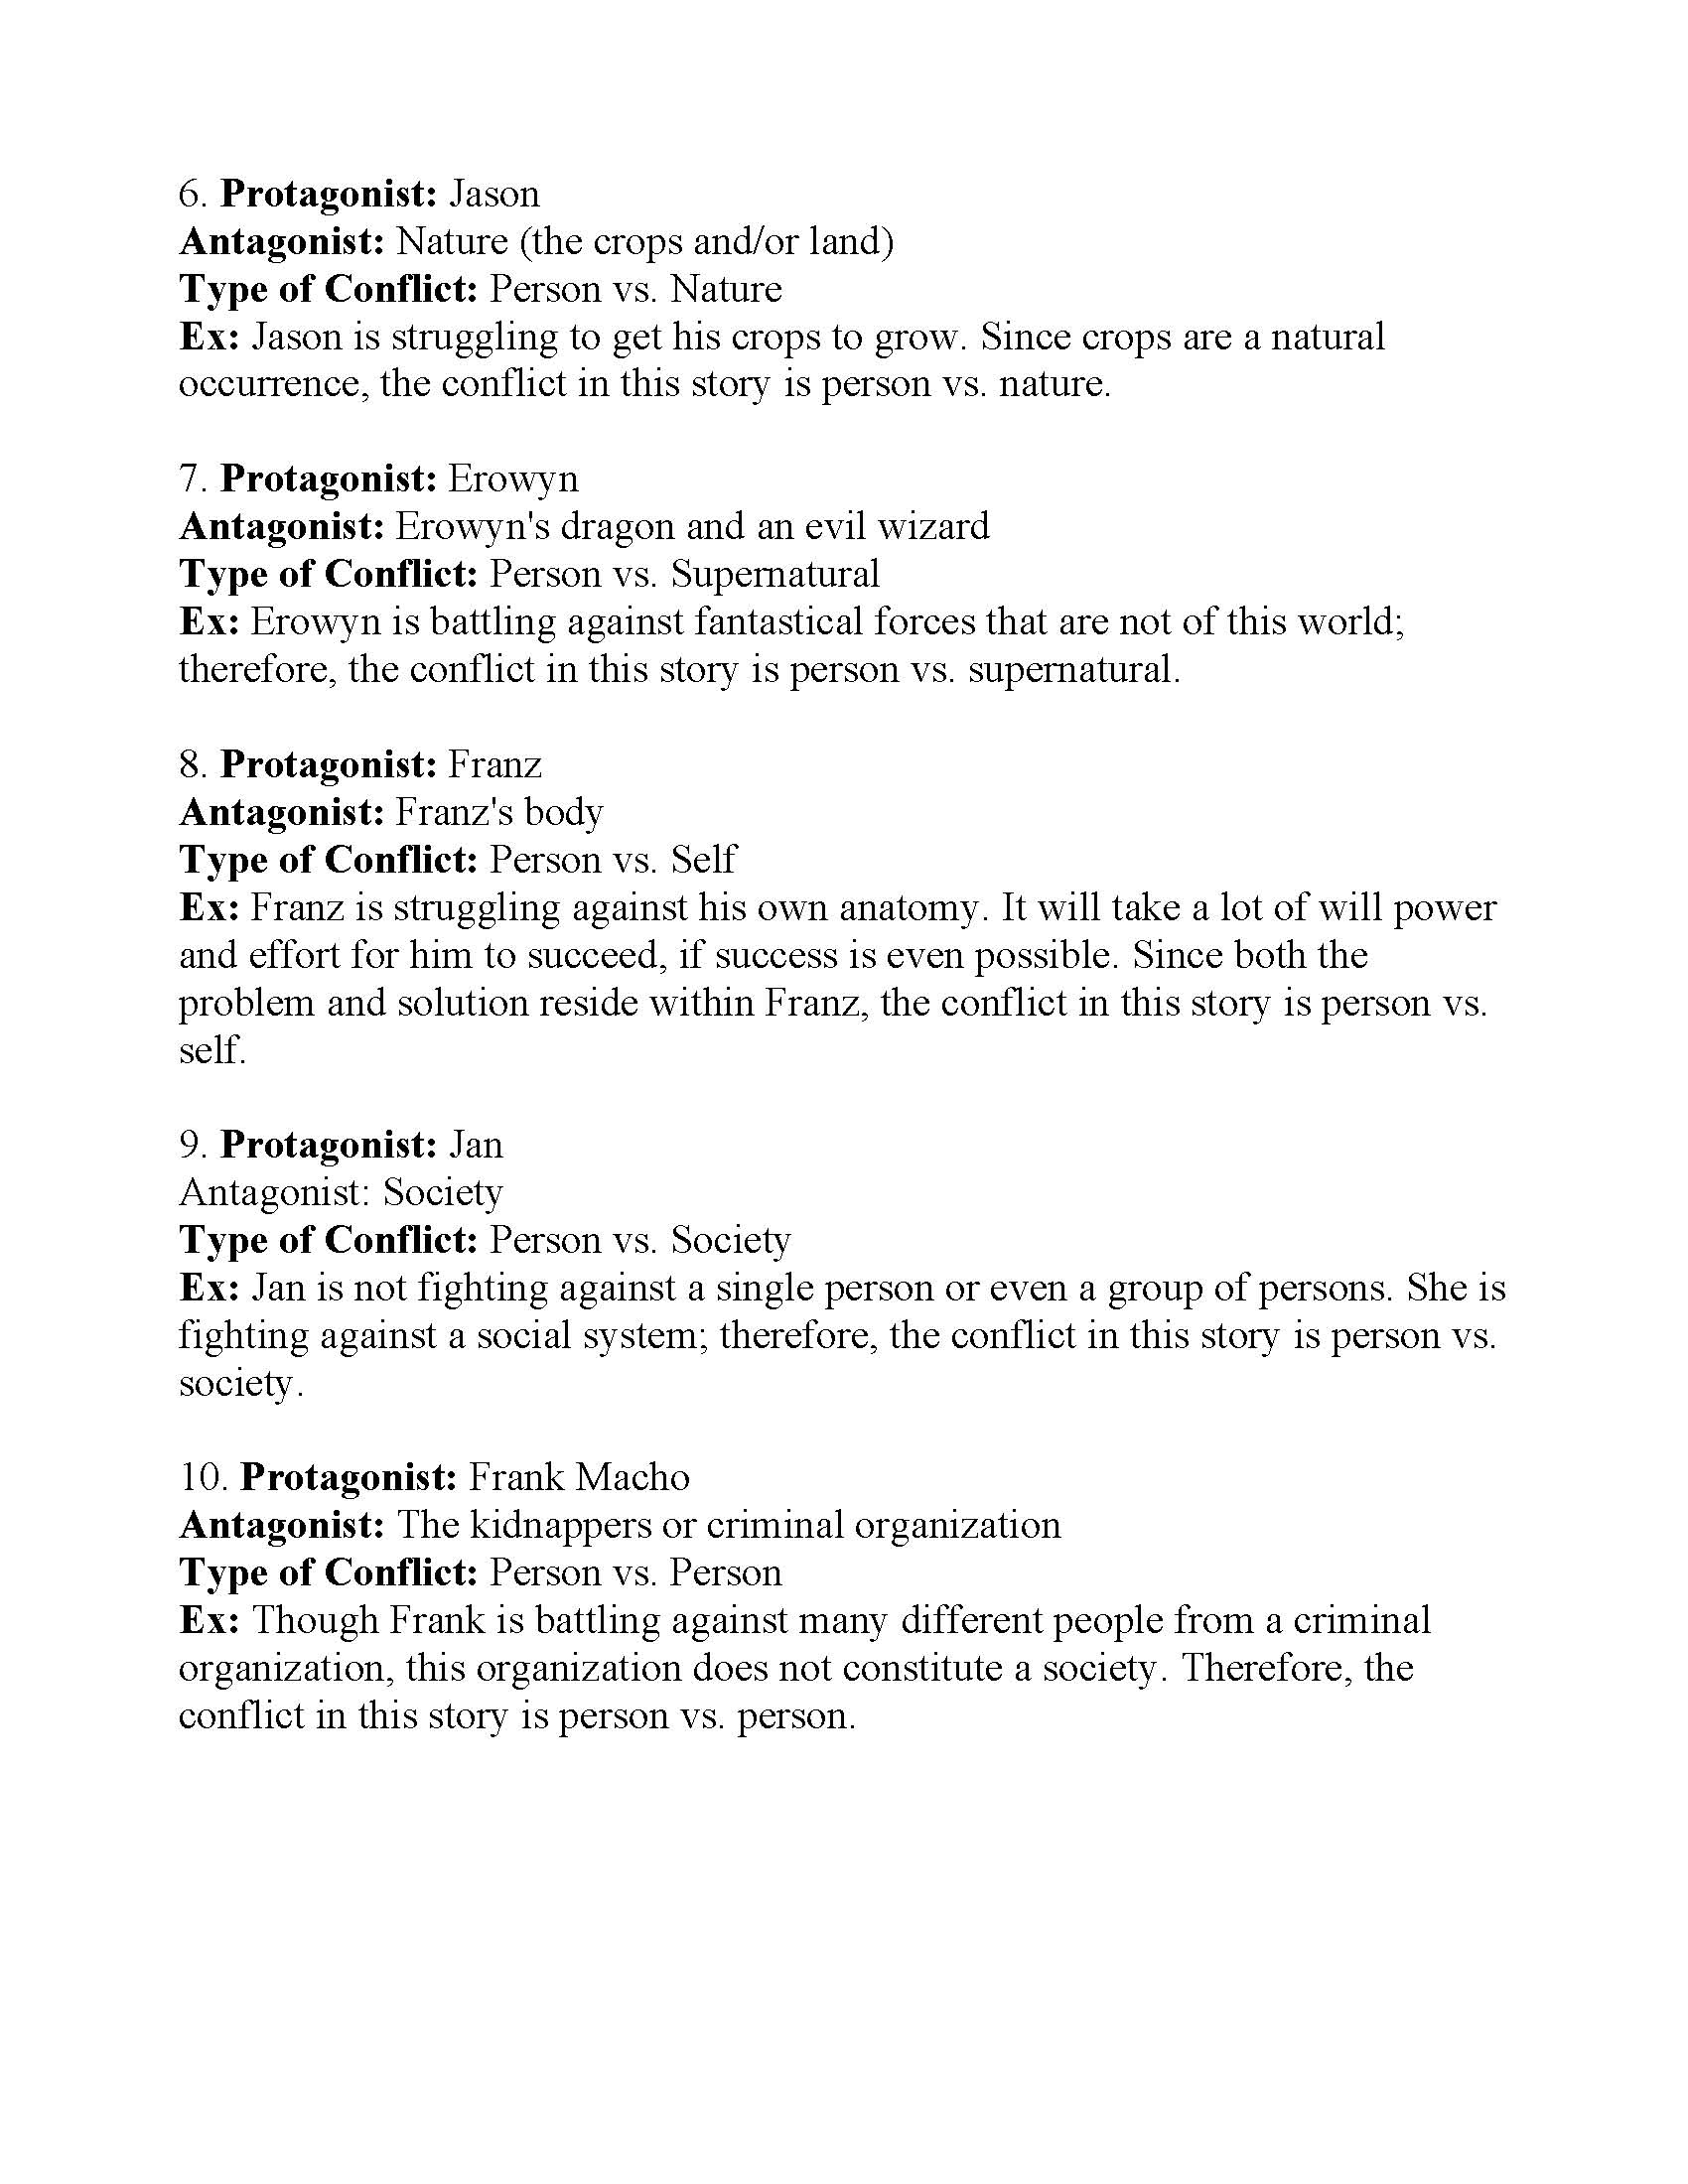 Types Of Conflict Worksheet 4 Answers